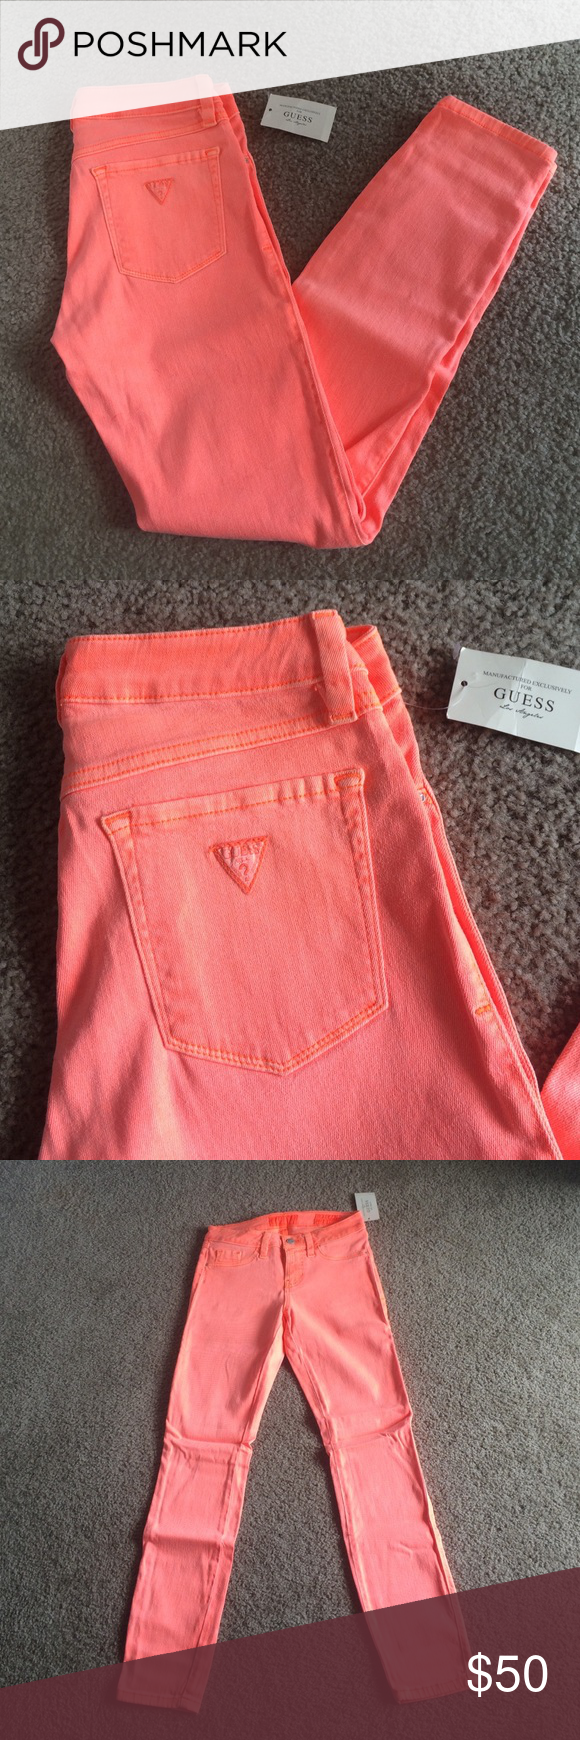 Neon Orange Guess Skinny Jeans Super fun neon orange Guess skinny jeans. Brittney style, ankle length. These are a true neon orange and appear slightly brighter than the photos. New with tags. Smoke free home. Guess Jeans Skinny